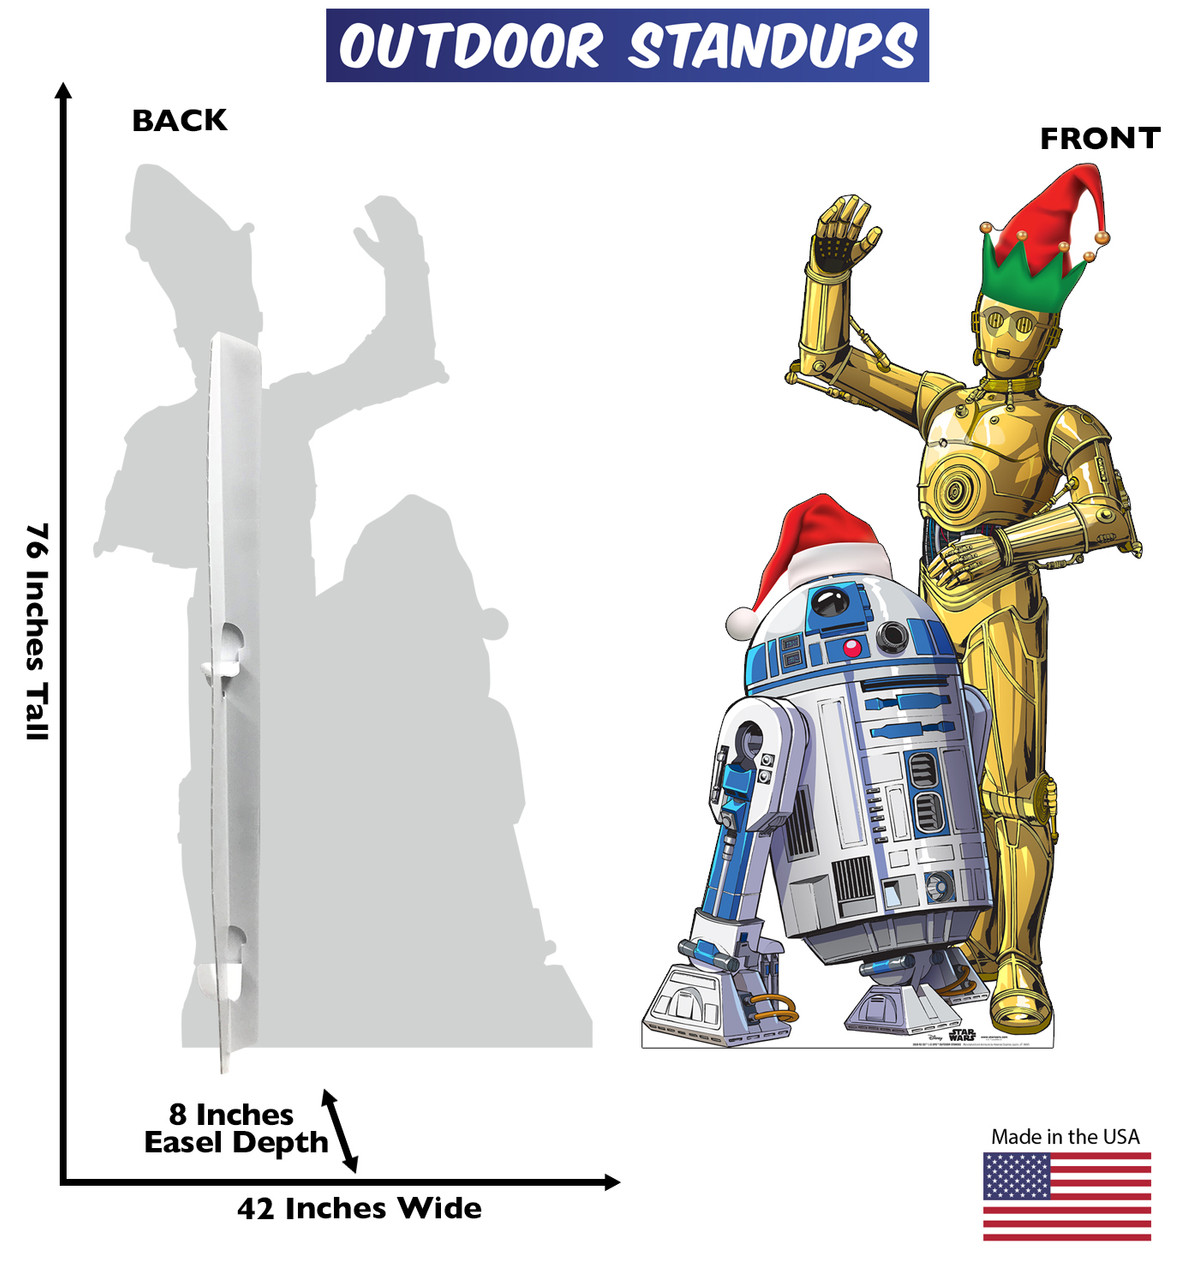 Coroplast outdoor standee of R2-D2 and C-3PO with holiday hats and front and back dimensions.